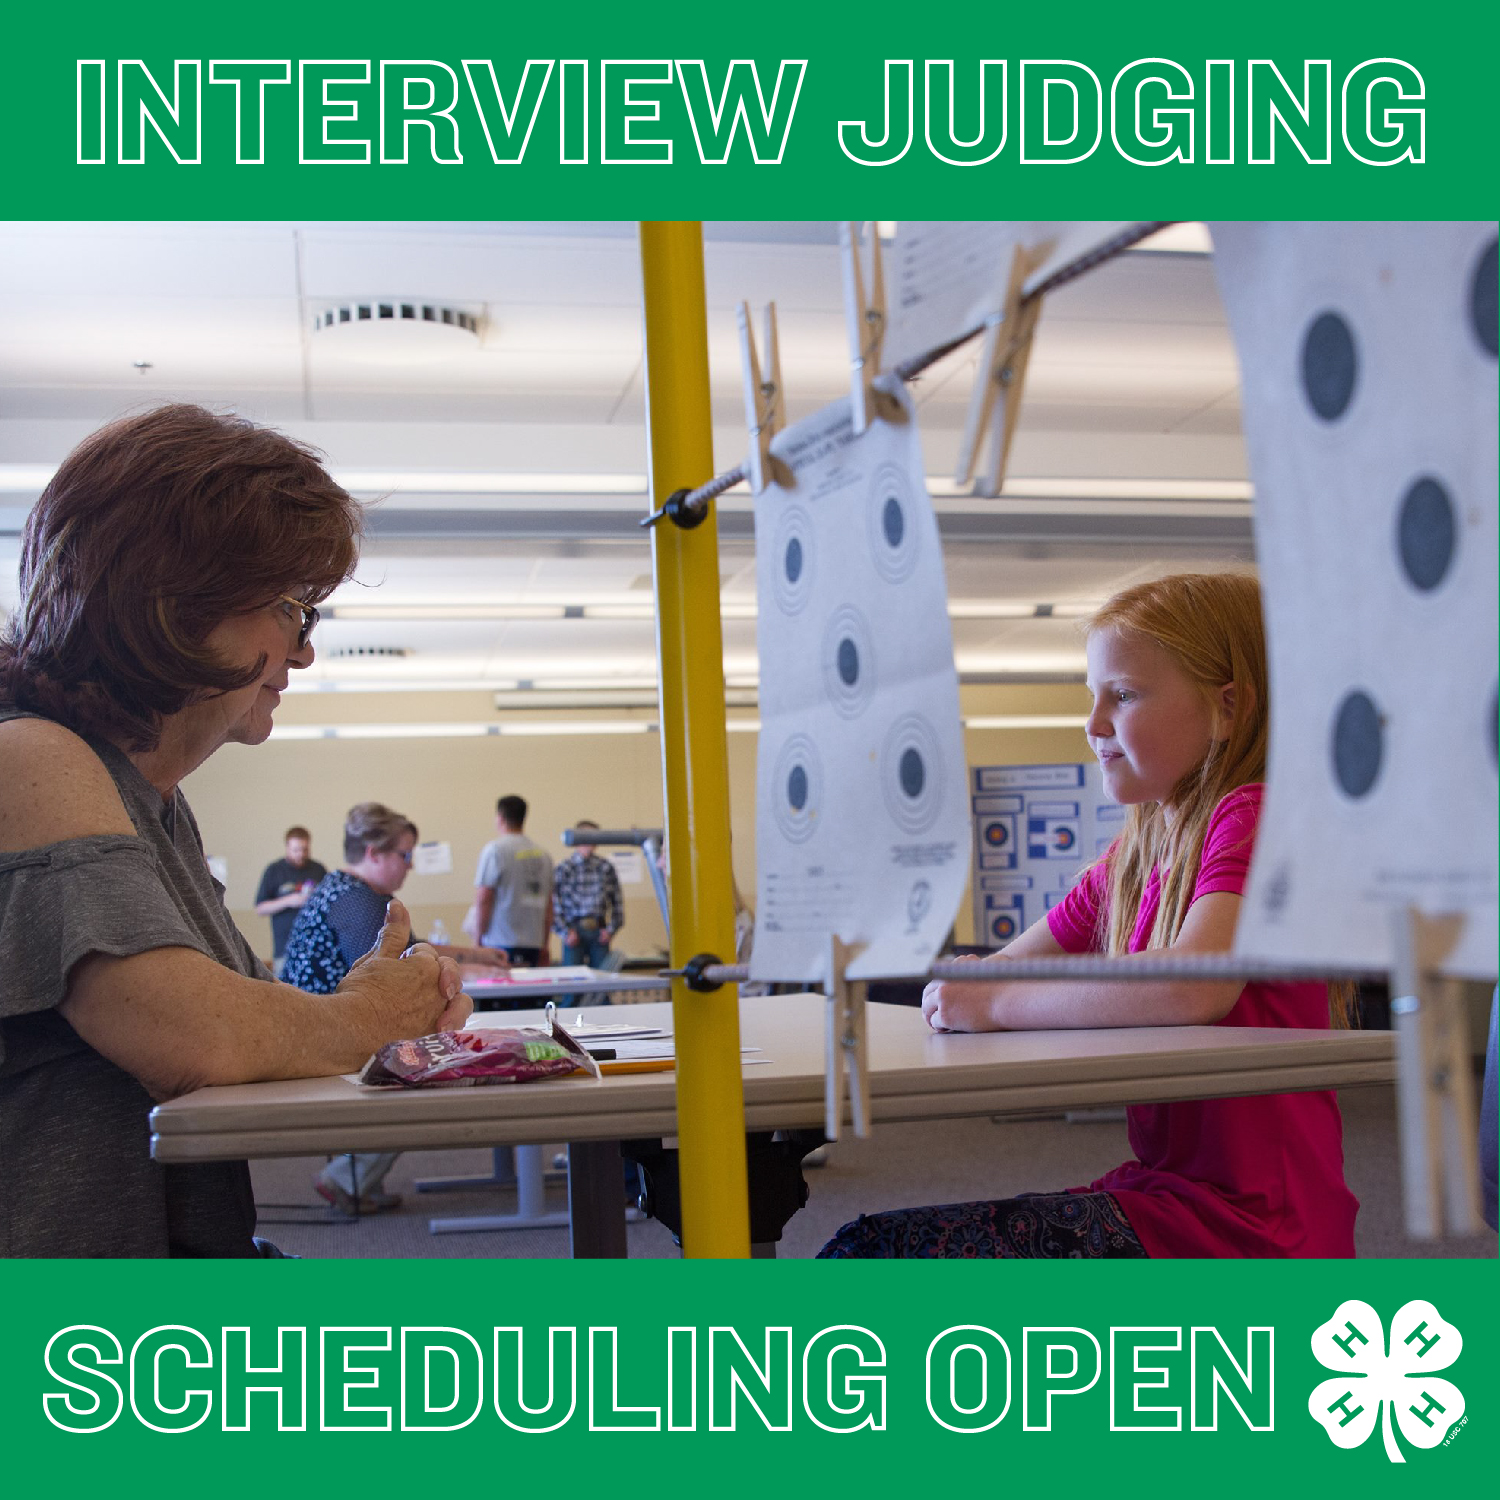 Interview Judging Scheduling.jpg